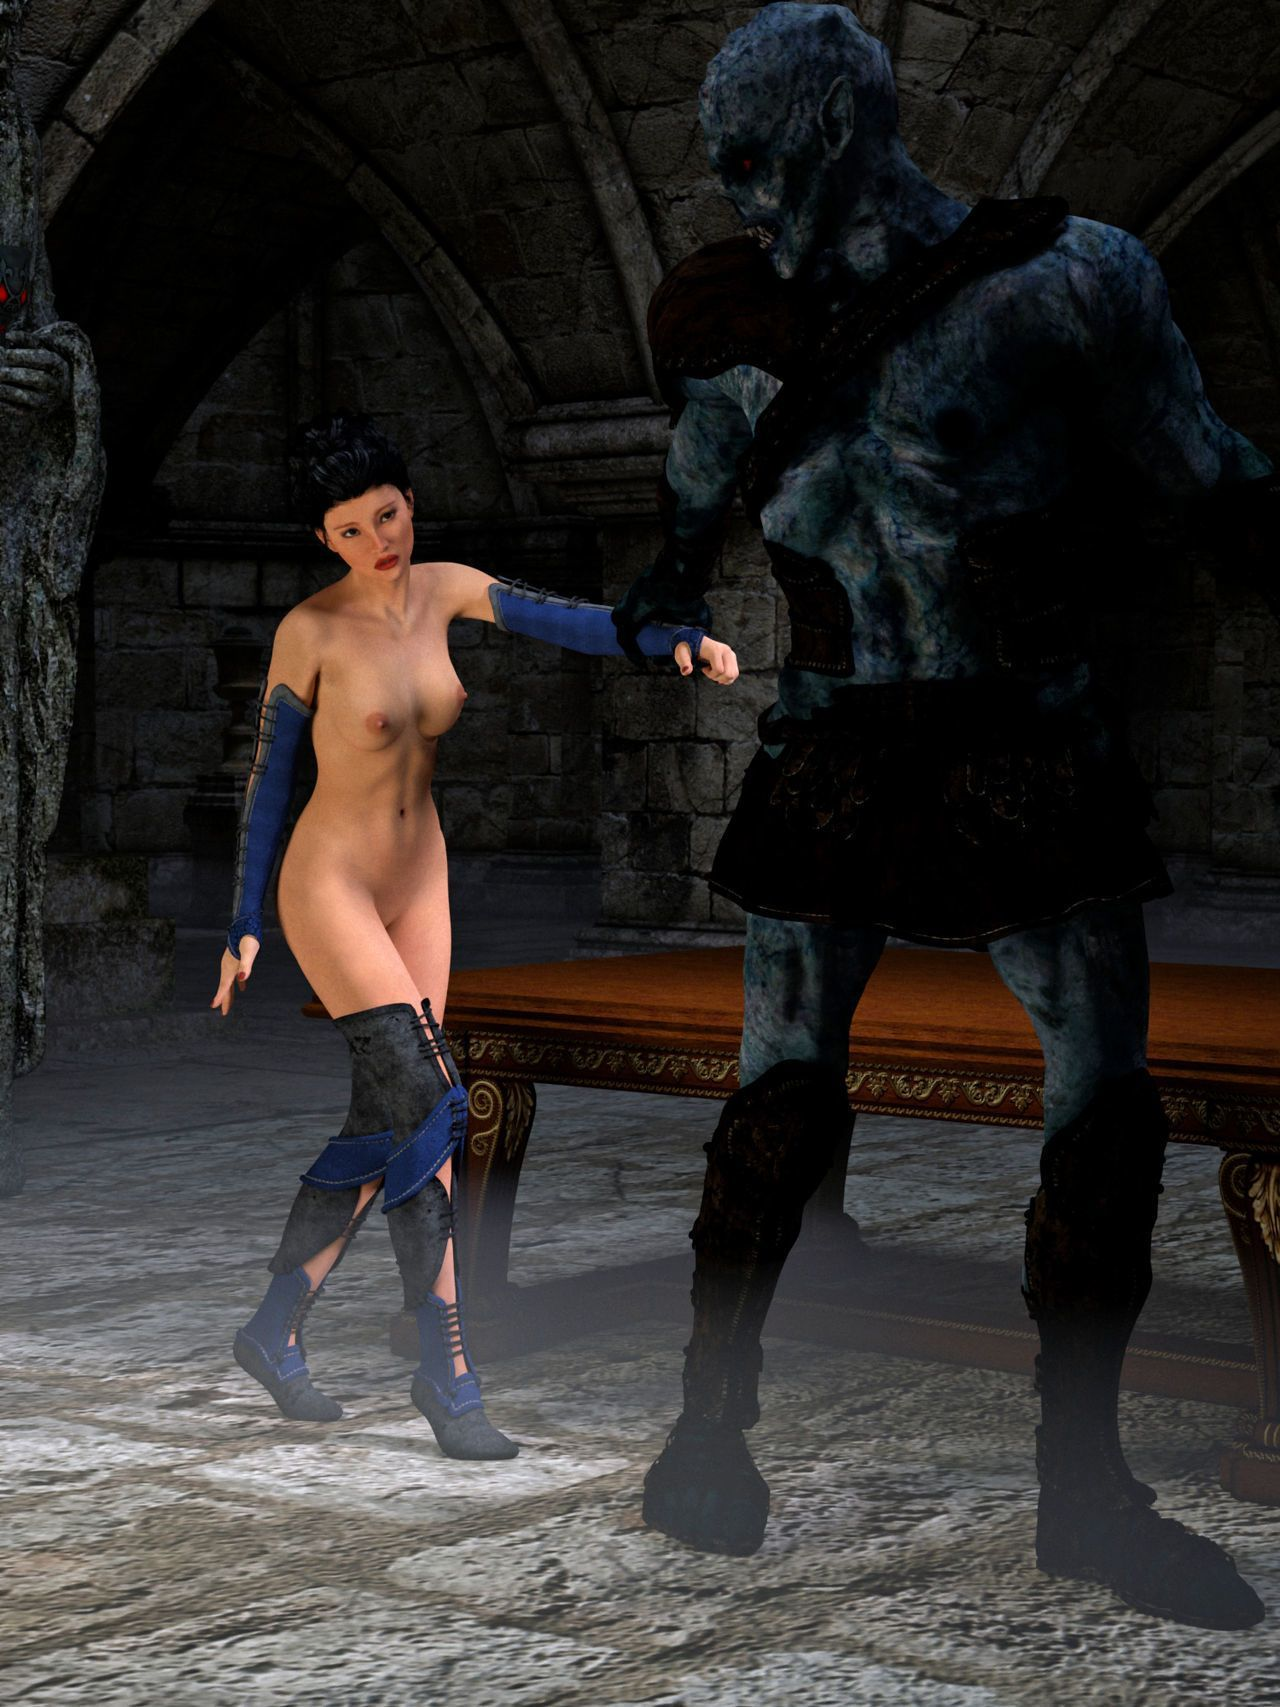 Hibbli3D – Sorceress Lori Beyond Death ( story + pics ) - part 5